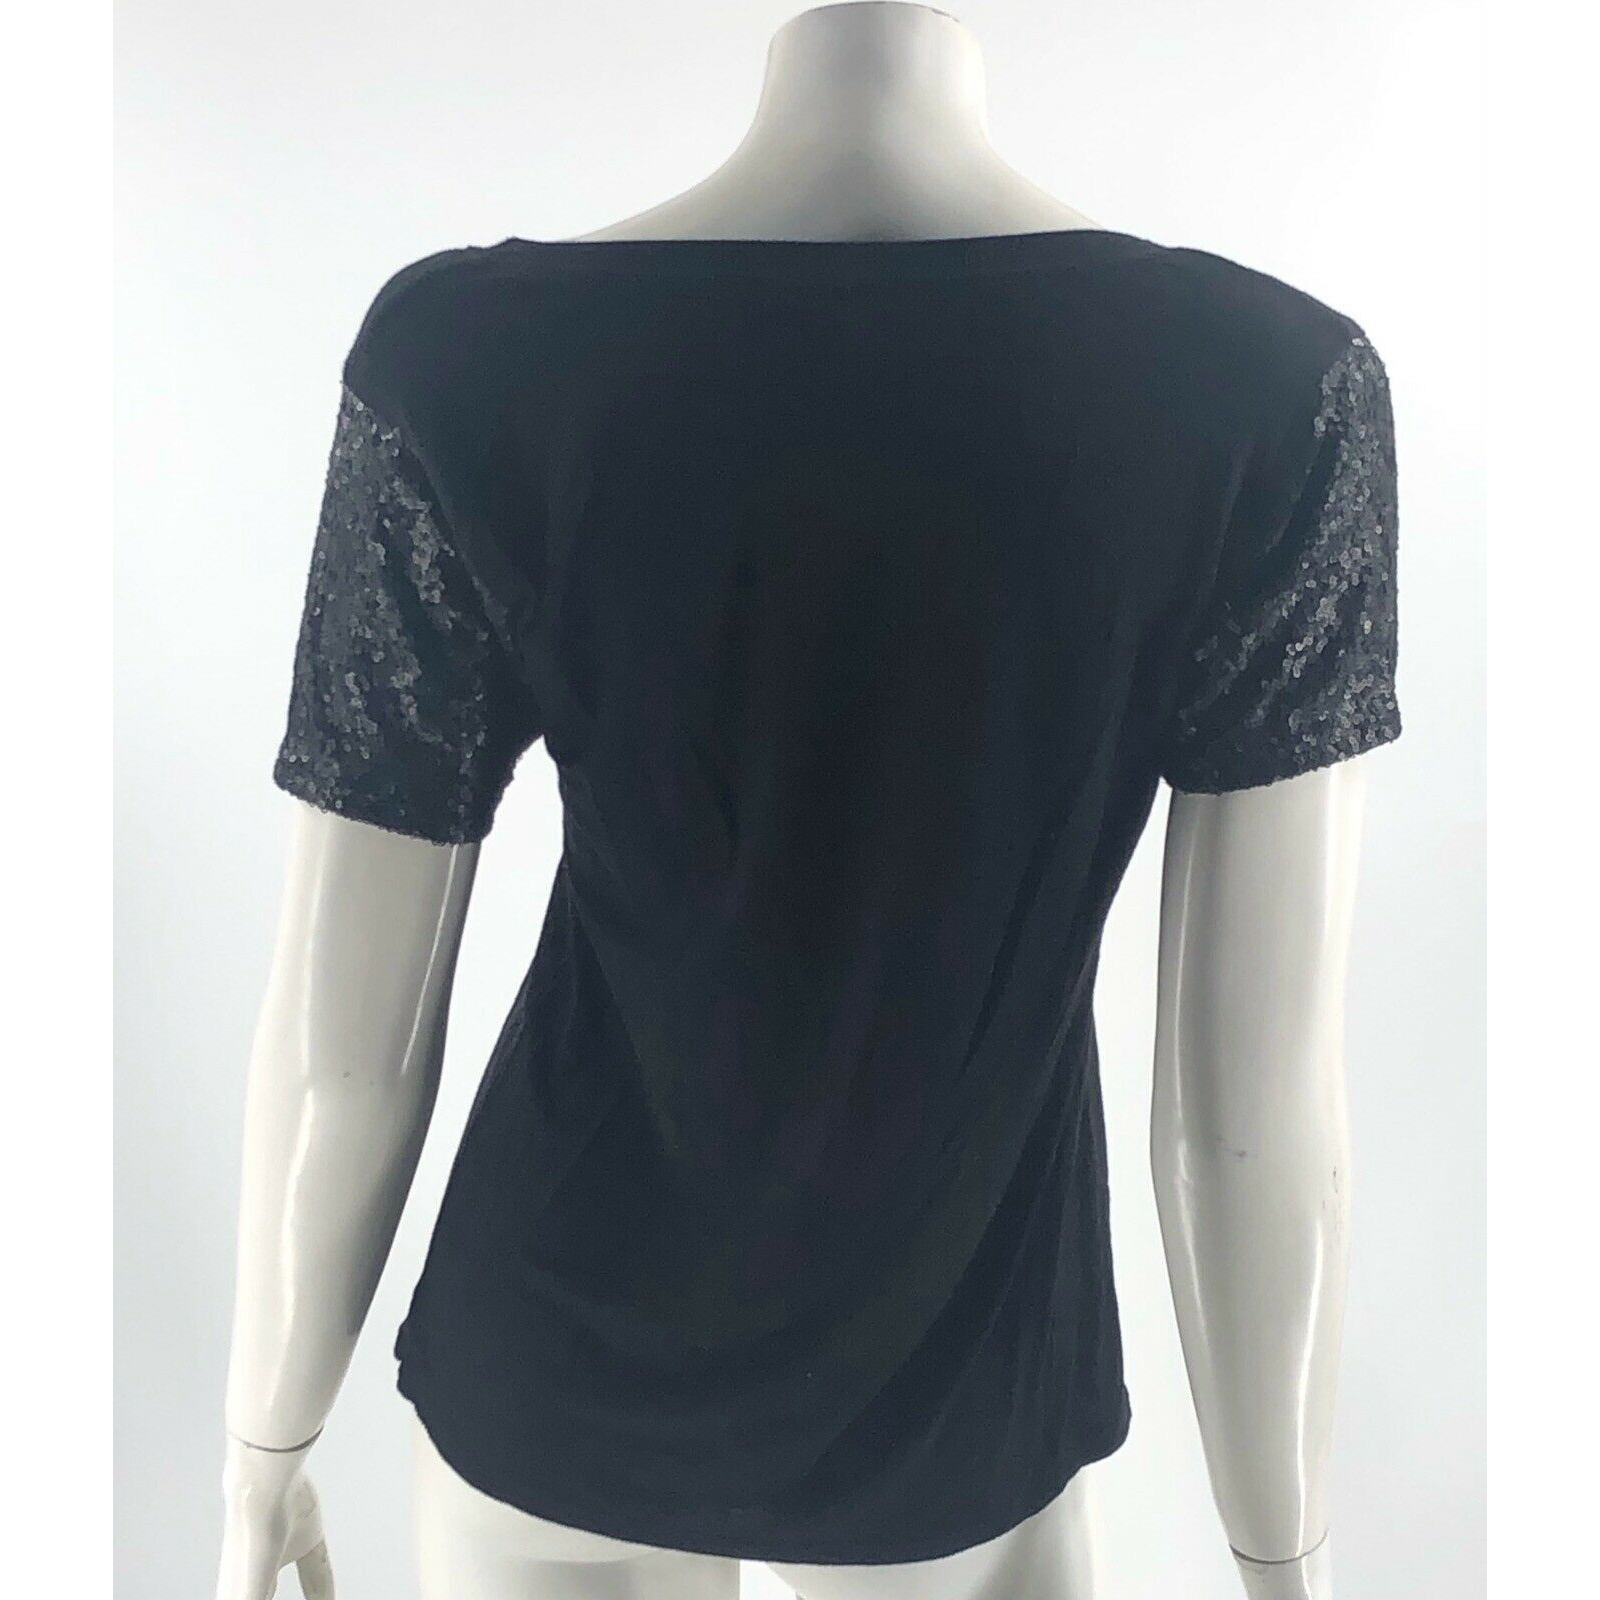 Product Image 1 - BKE Top Size Small Black